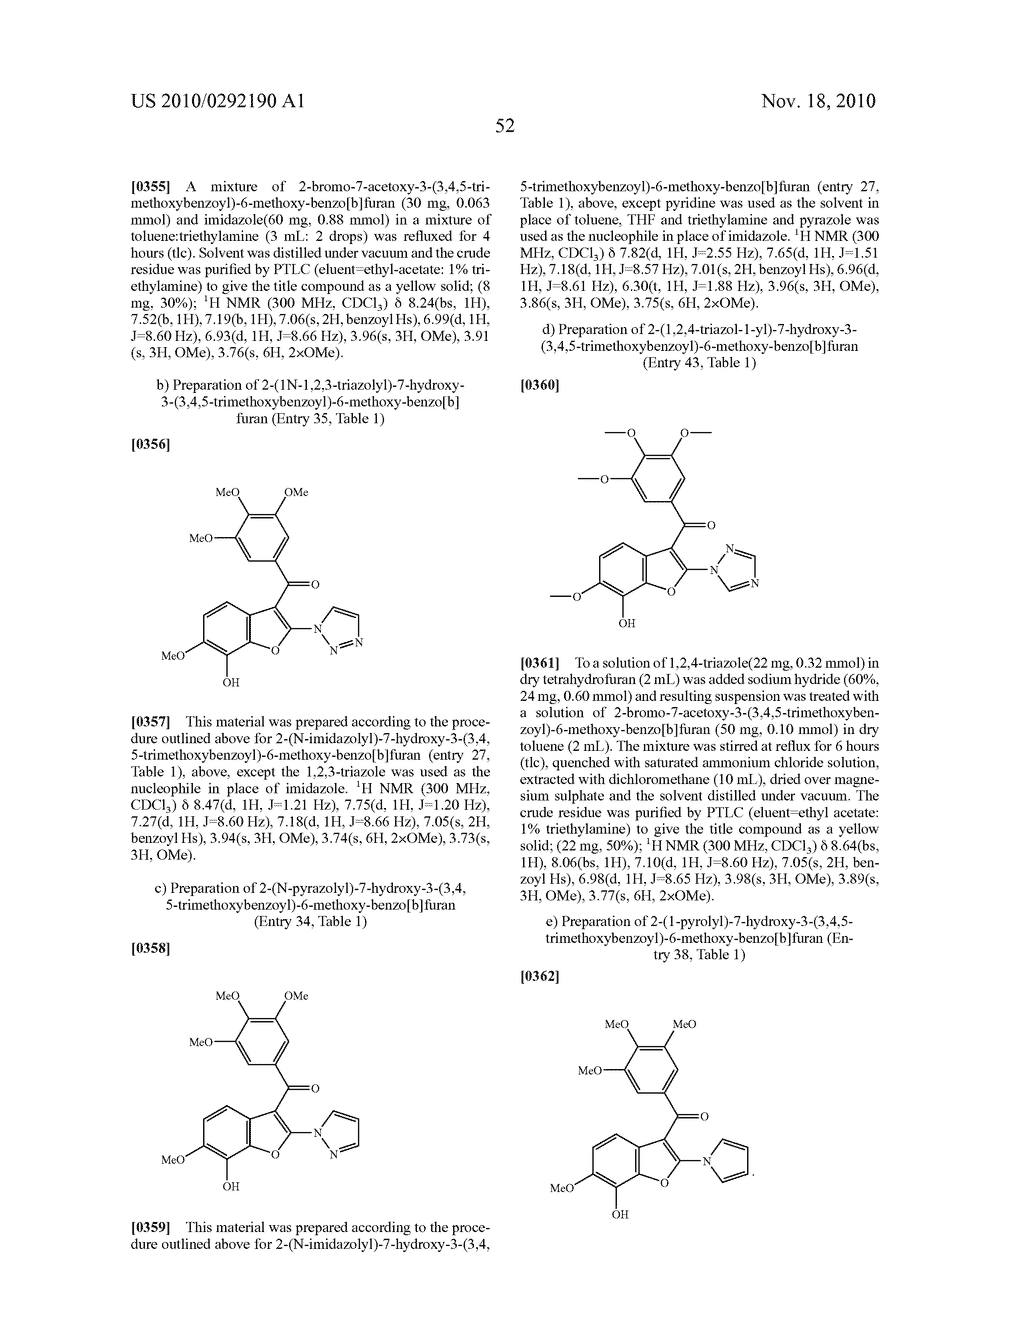 NOVEL TUBULIN POLYMERISATION INHIBITORS - diagram, schematic, and image 54